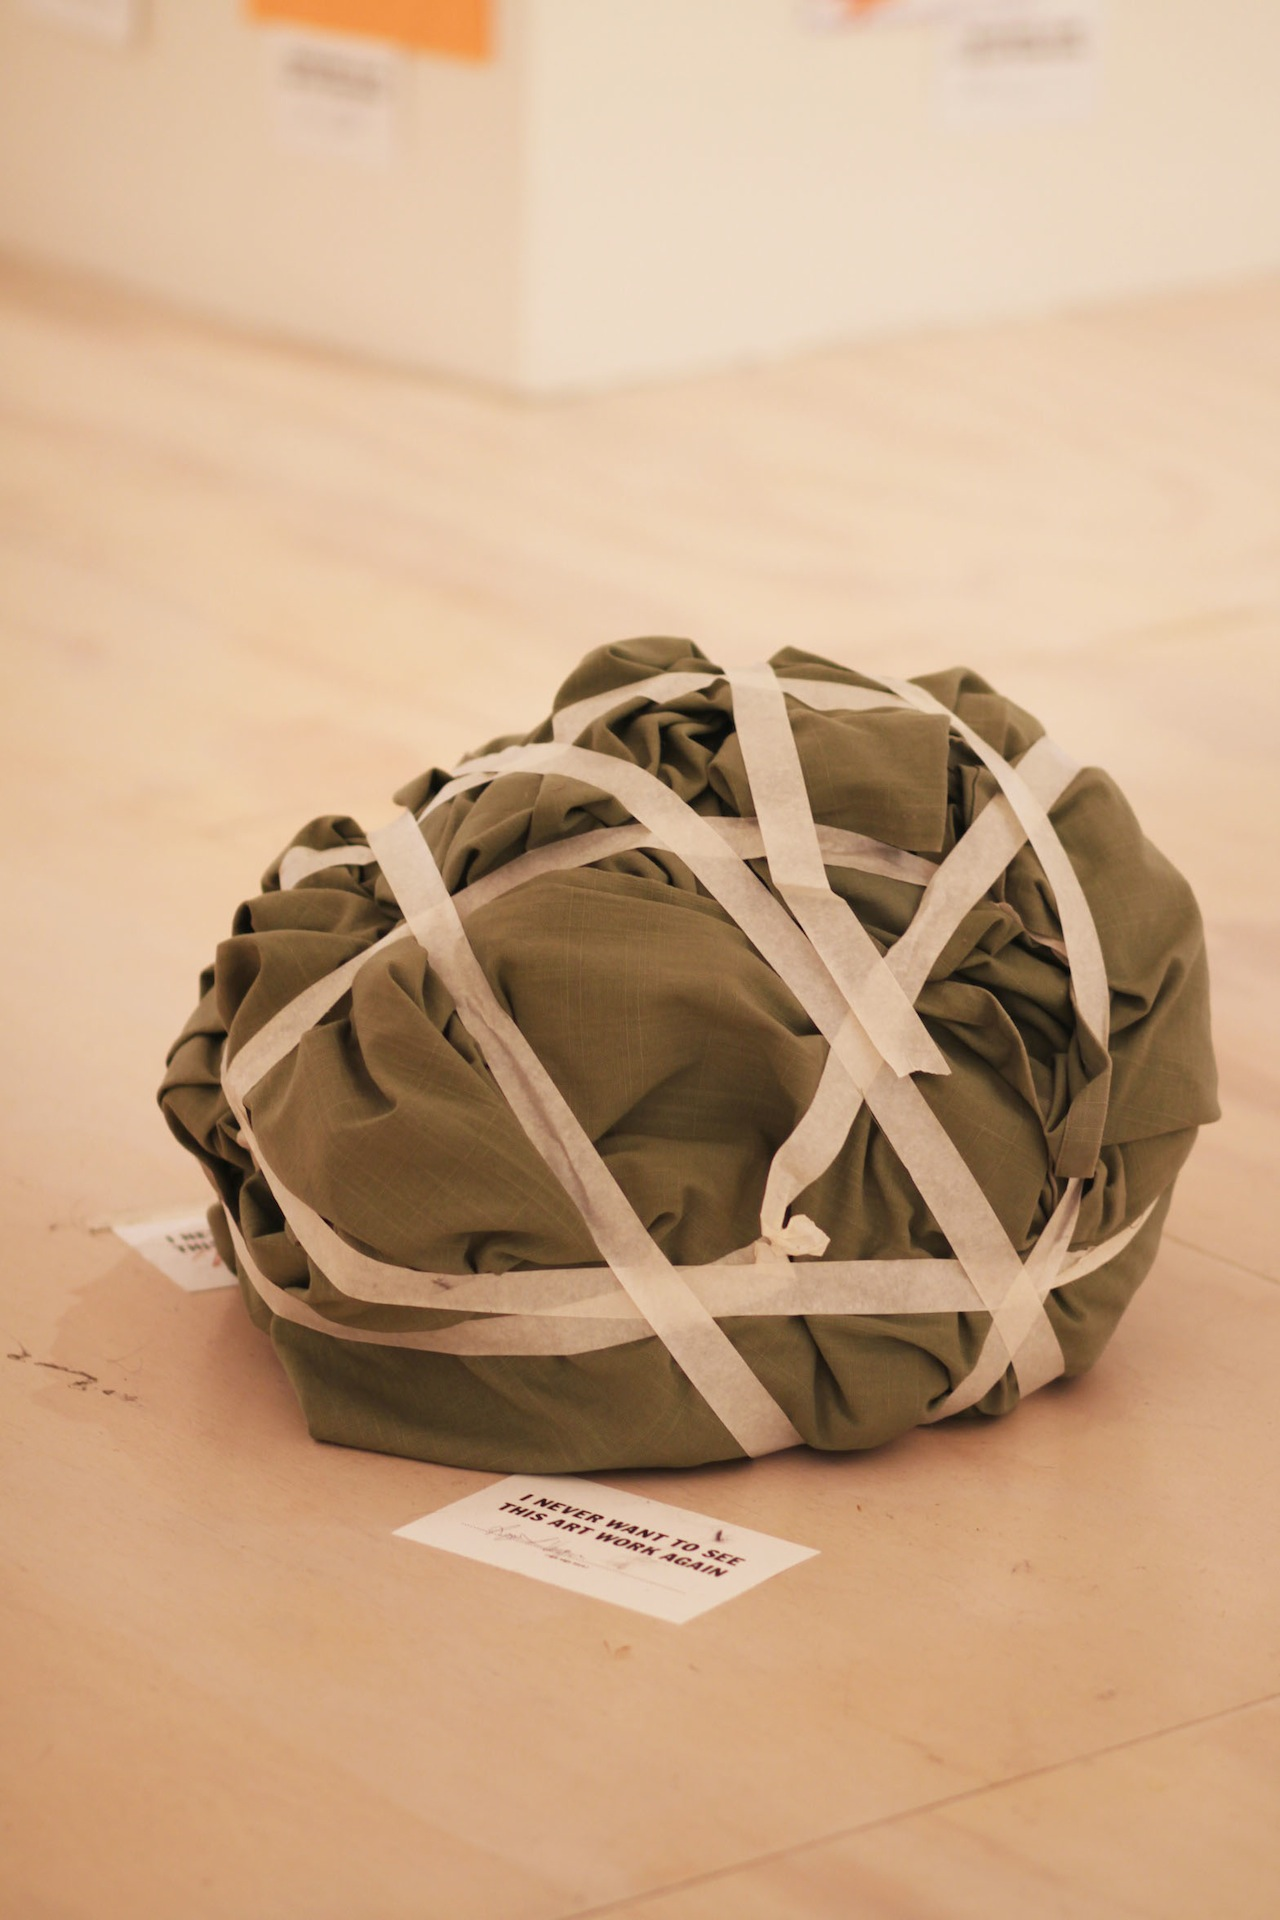 A crumpled-up blanket wrapped in tape.